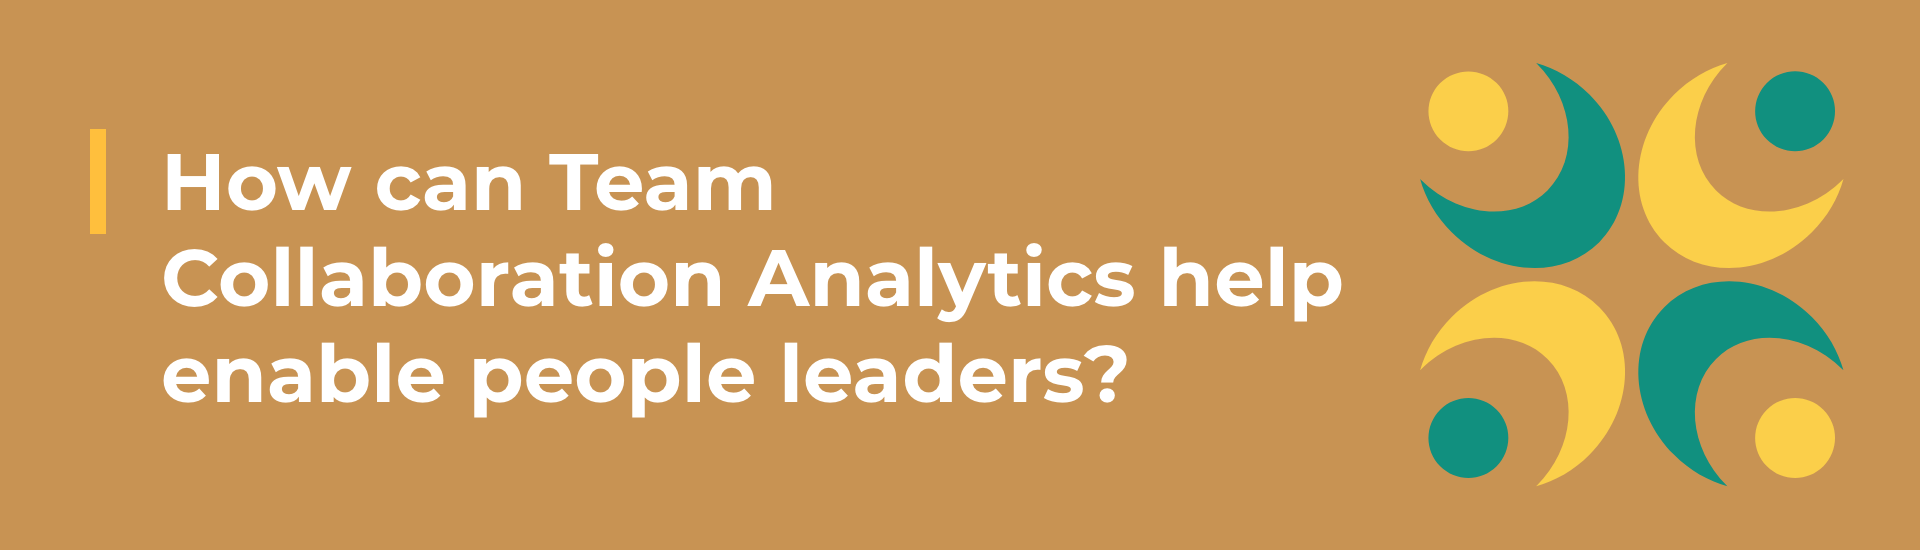 How can Team Collaboration Analytics help enable people leaders?